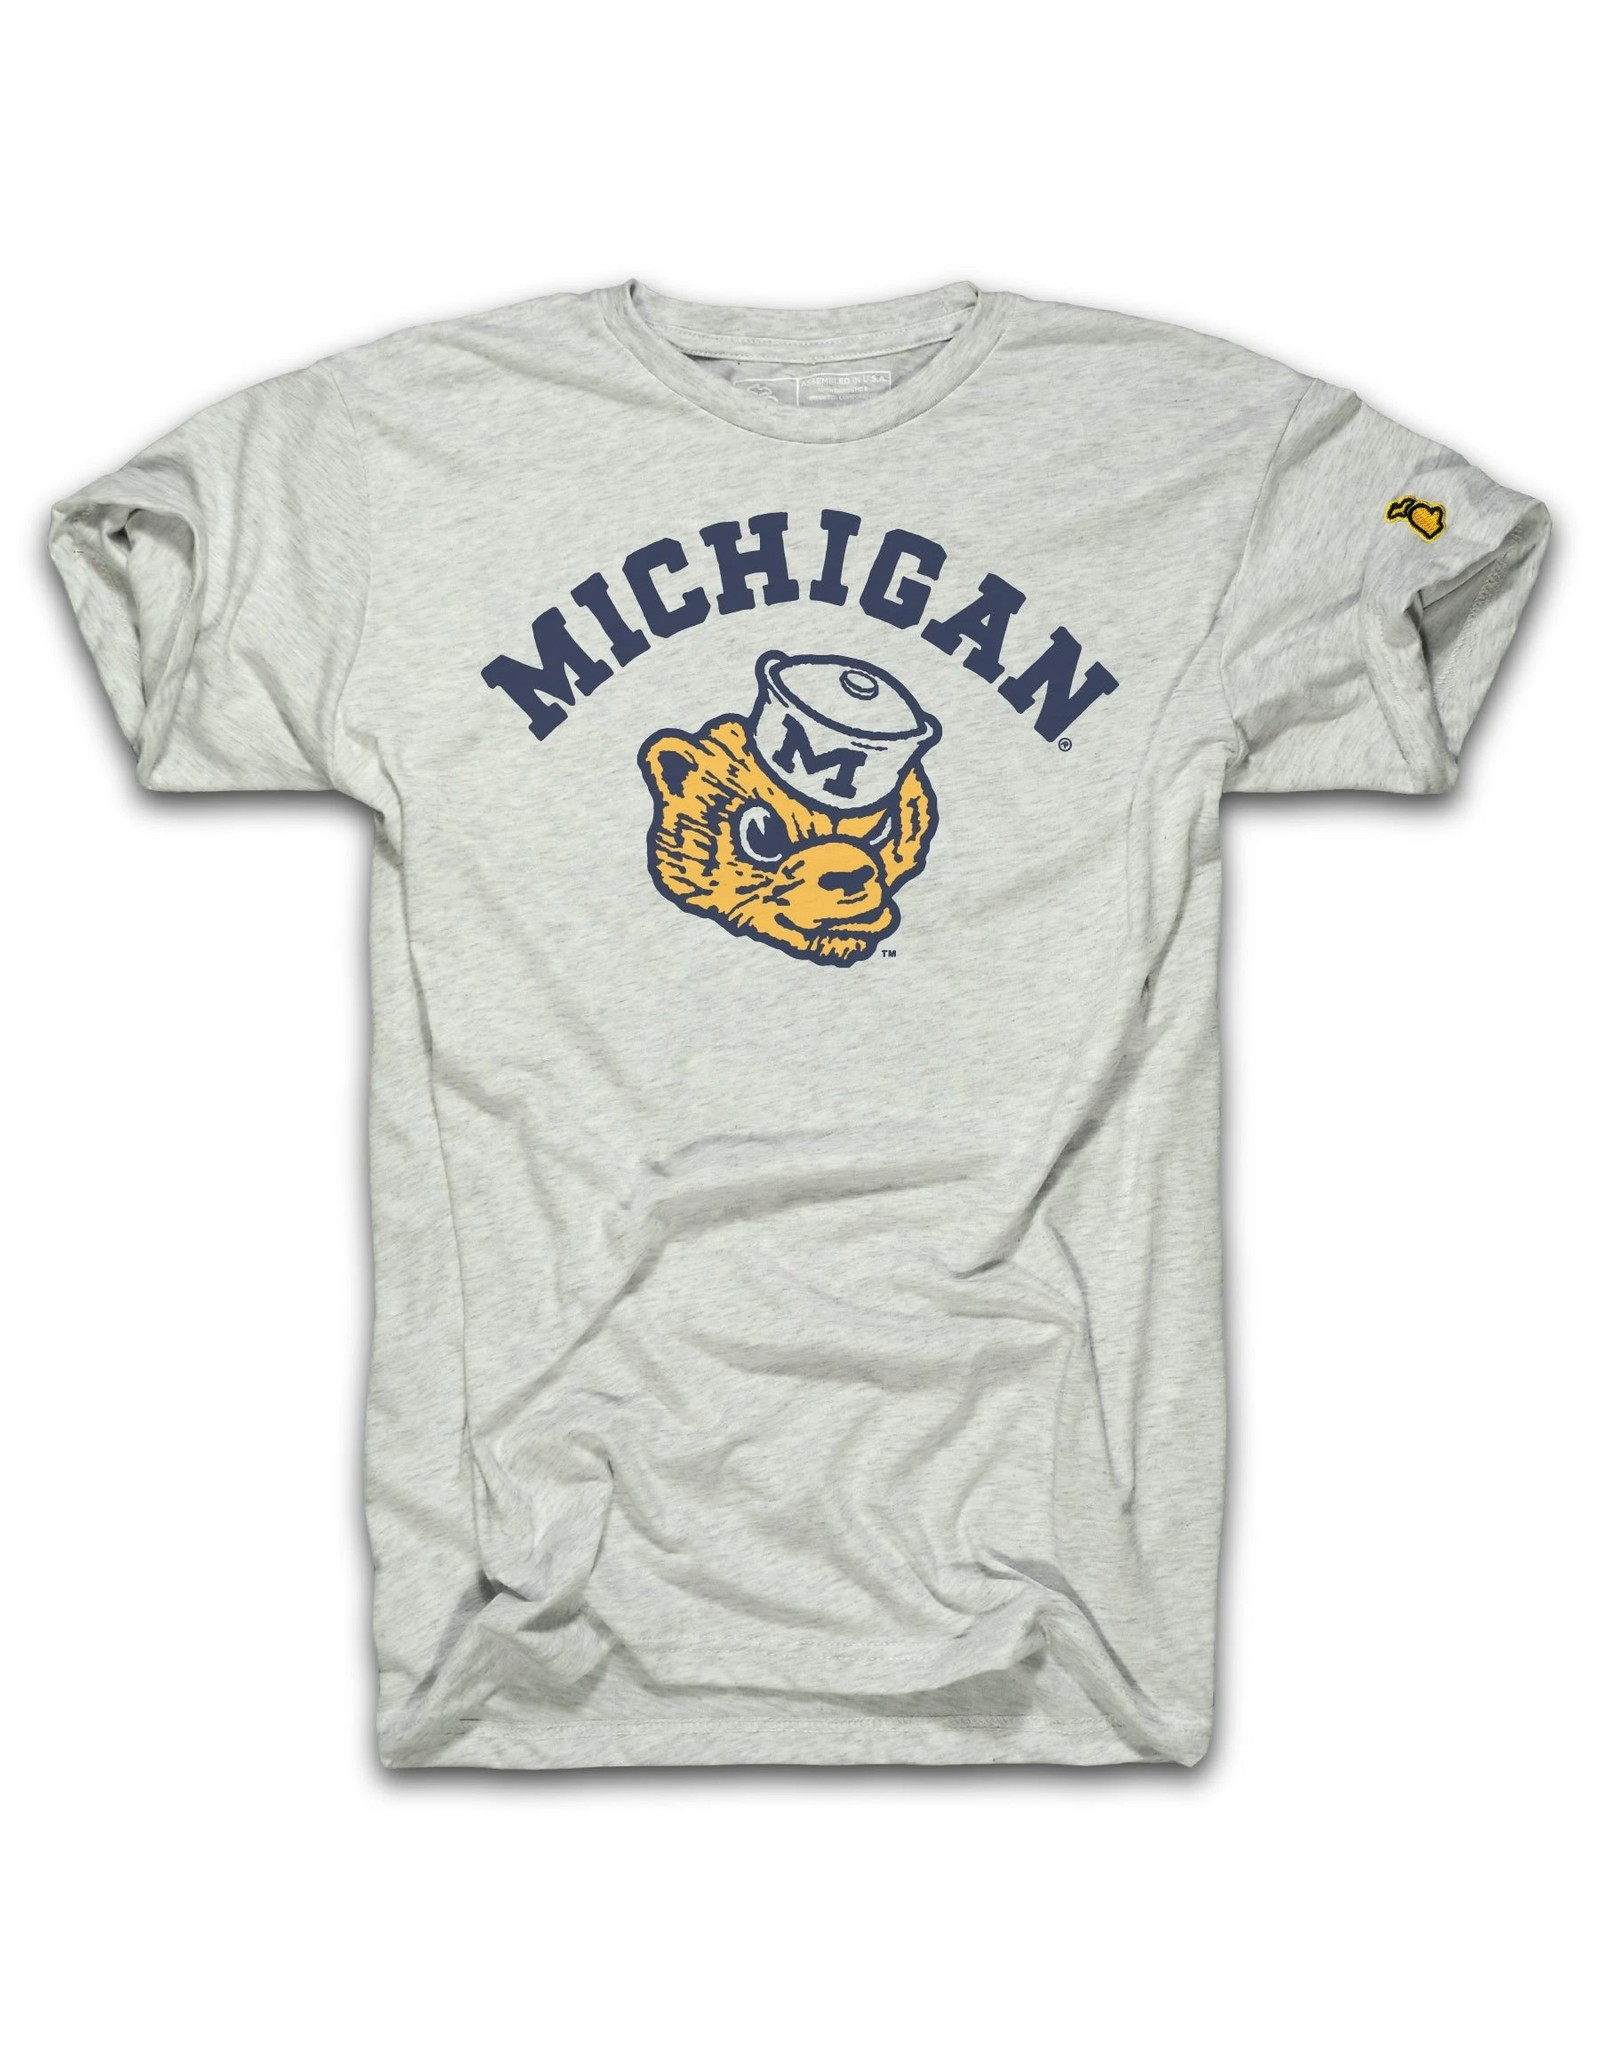 The Mitten State U of M Wolverbear Tee